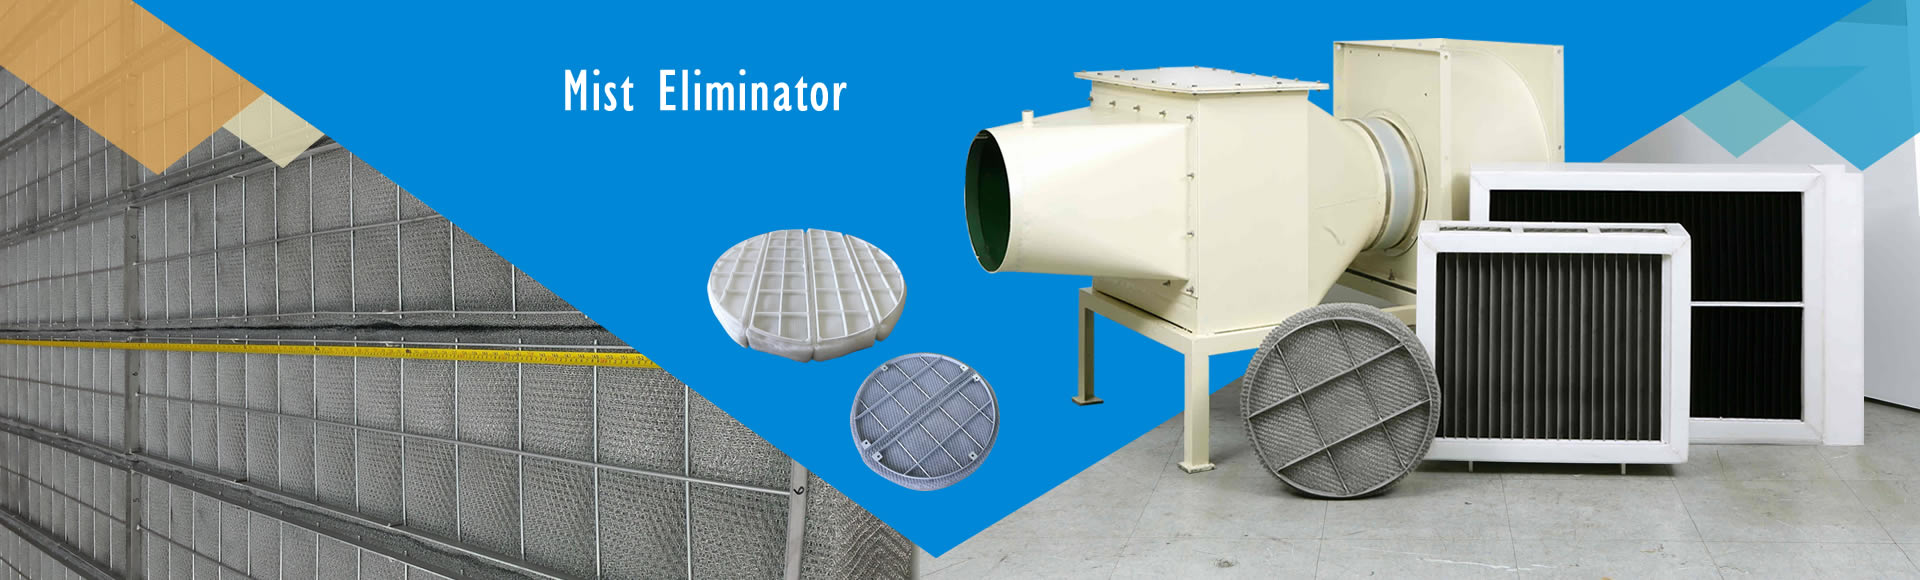 PP and stainless steel mist eliminators for gas-liquid separation.